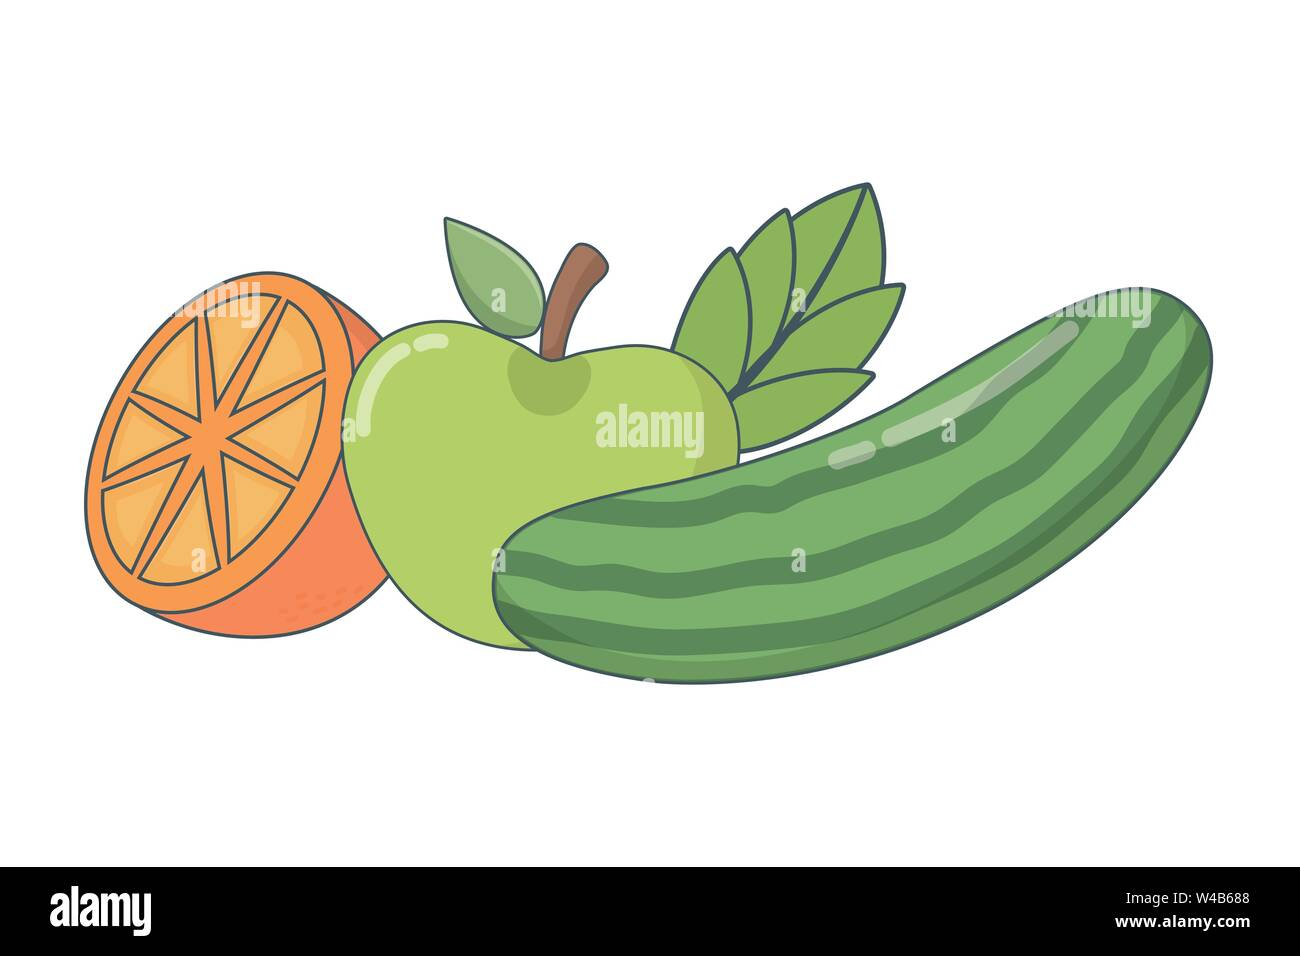 Köstlich gesunde Mahlzeit Obst mix cartoon Vector Illustration graphic design Stockbild